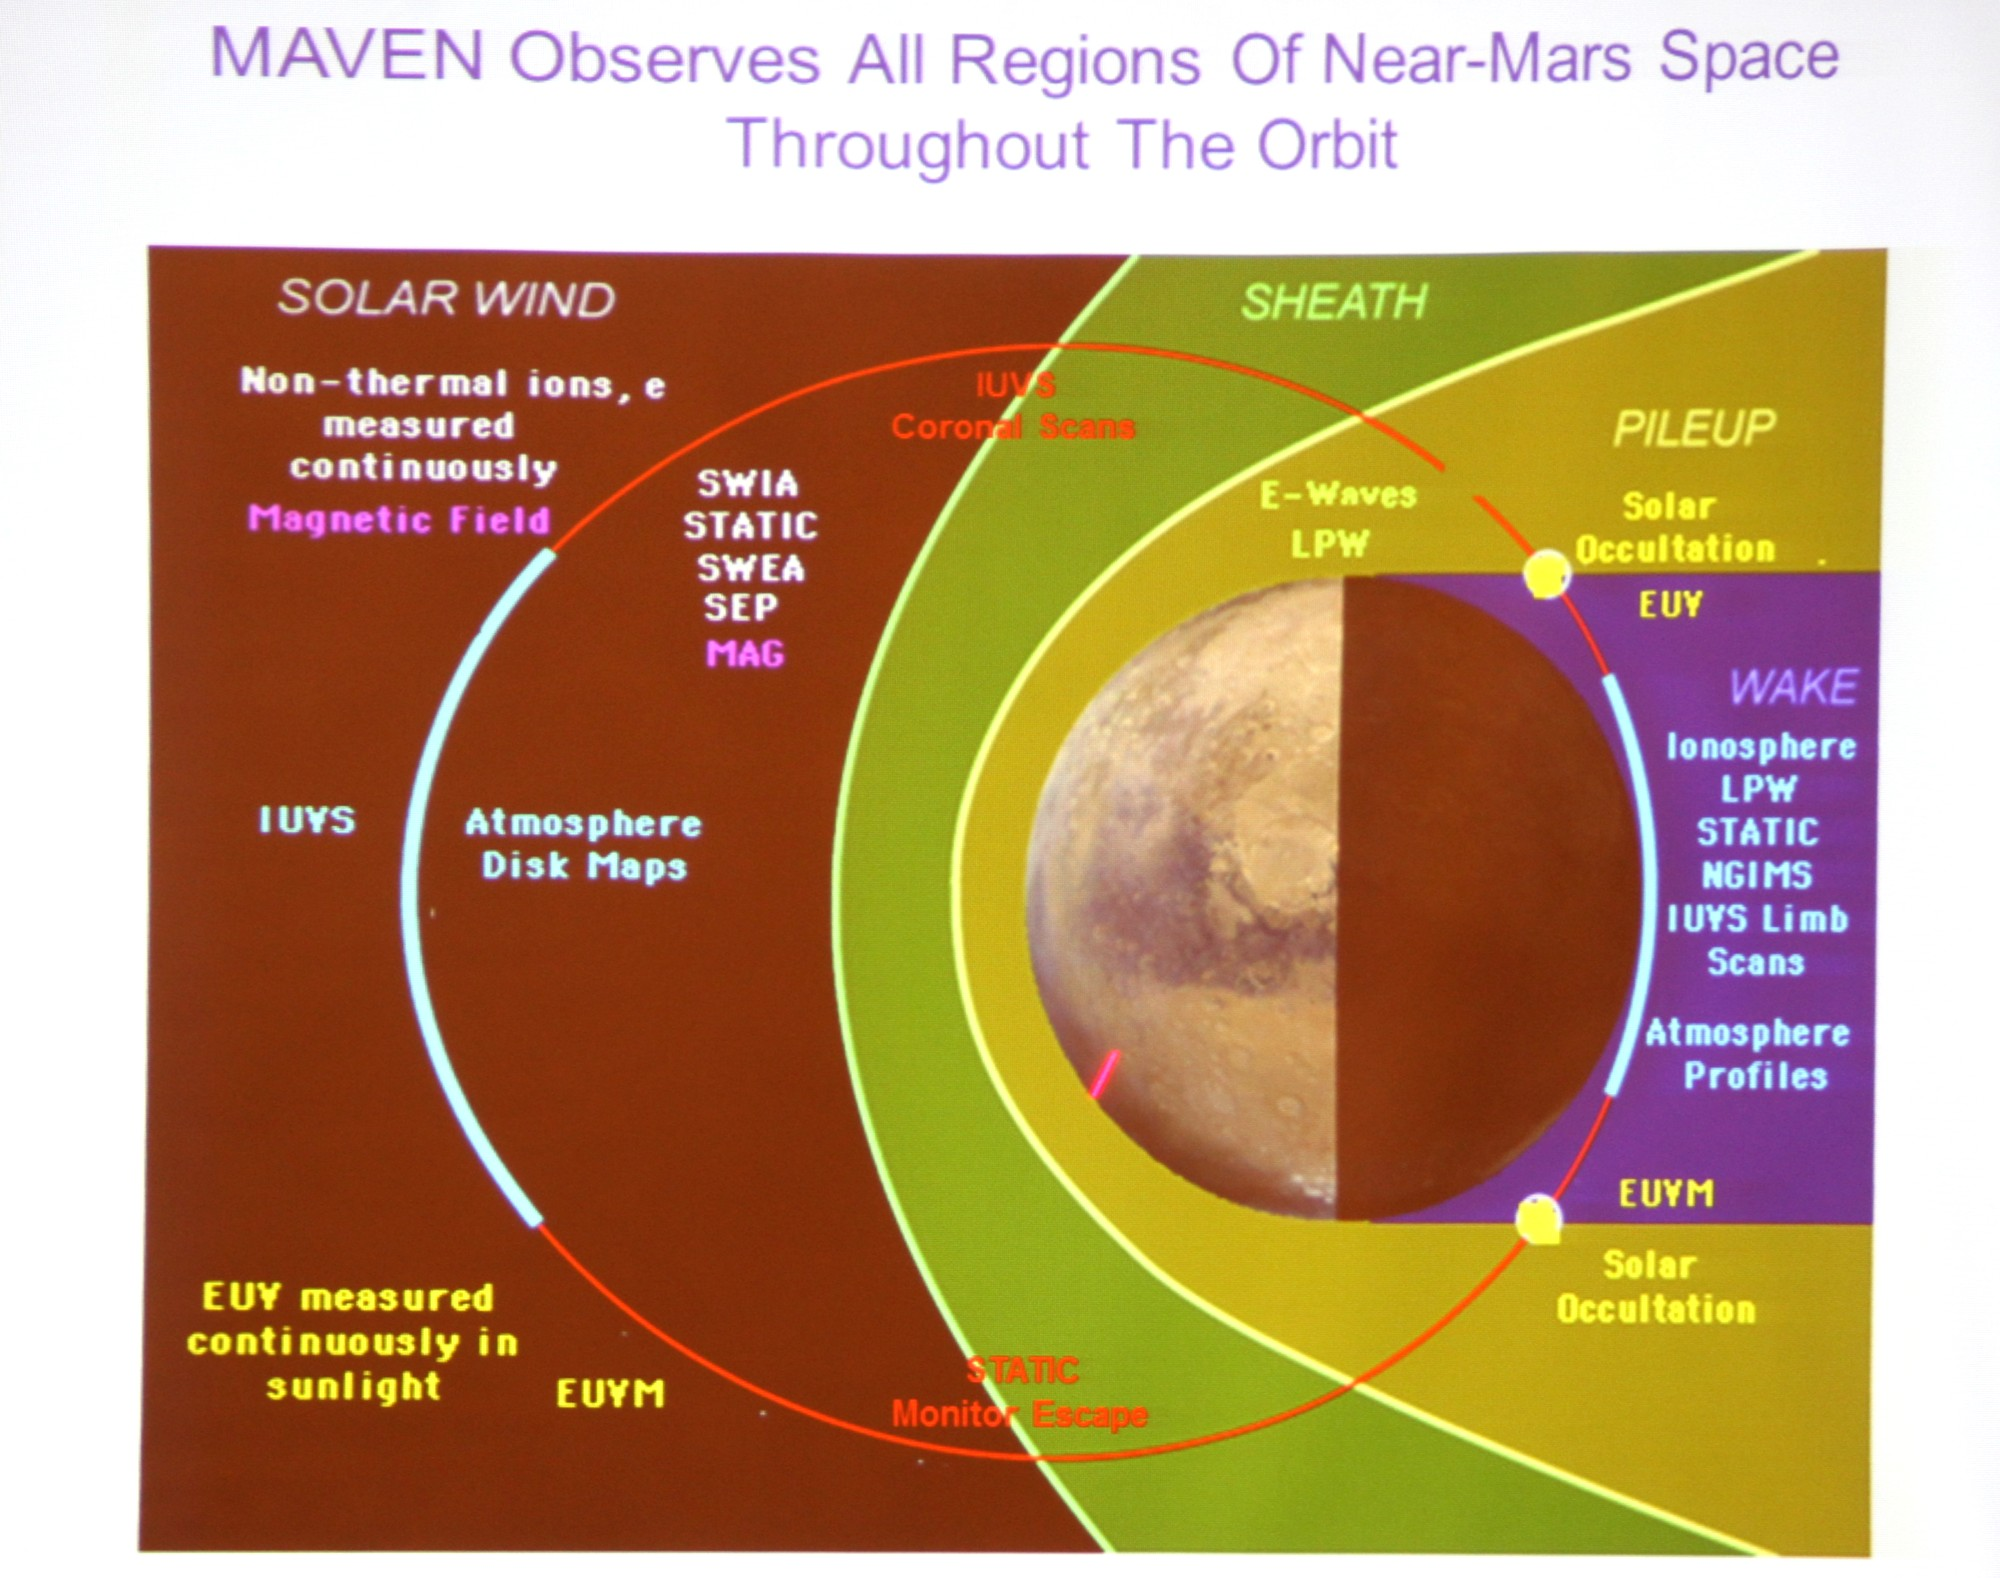 14 08 05 - 16h 35m 18s - San Diego Space 2014 Coming decade Mars explo tr